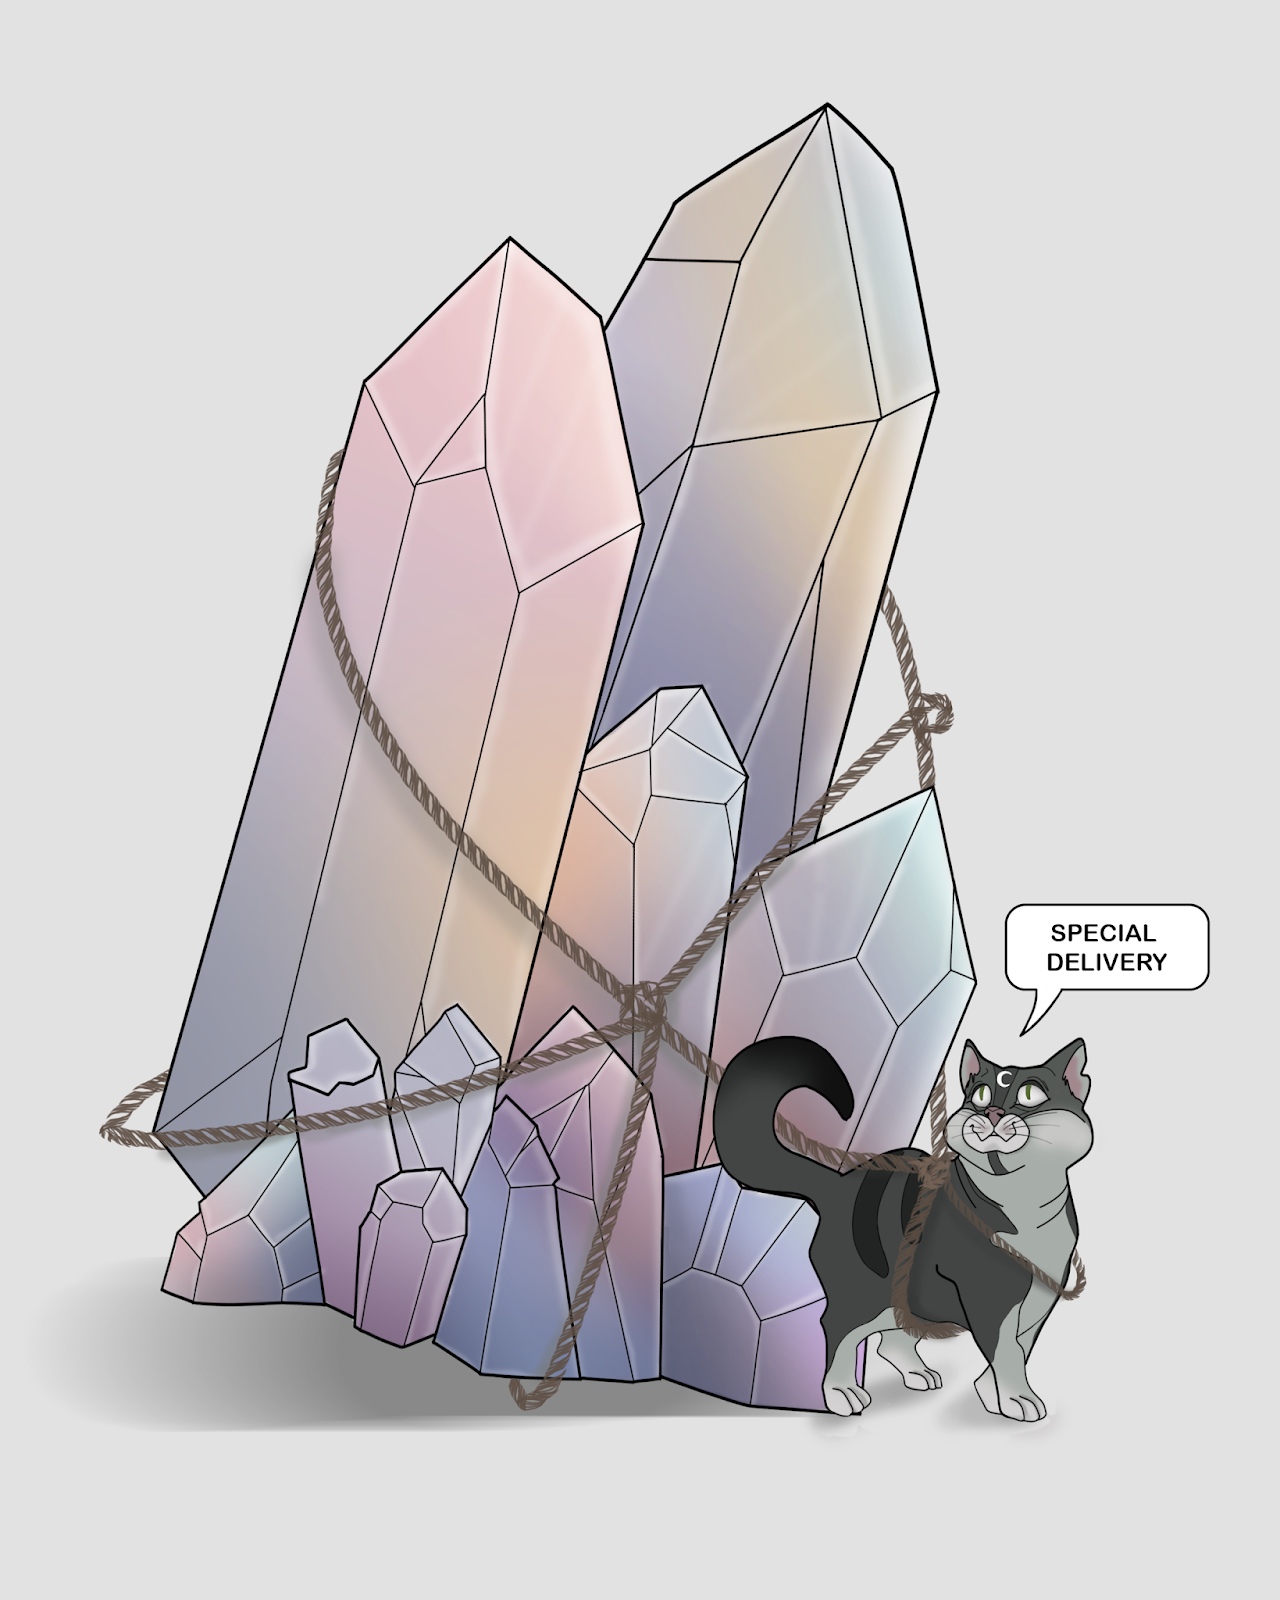 cat crystal drawing illustration